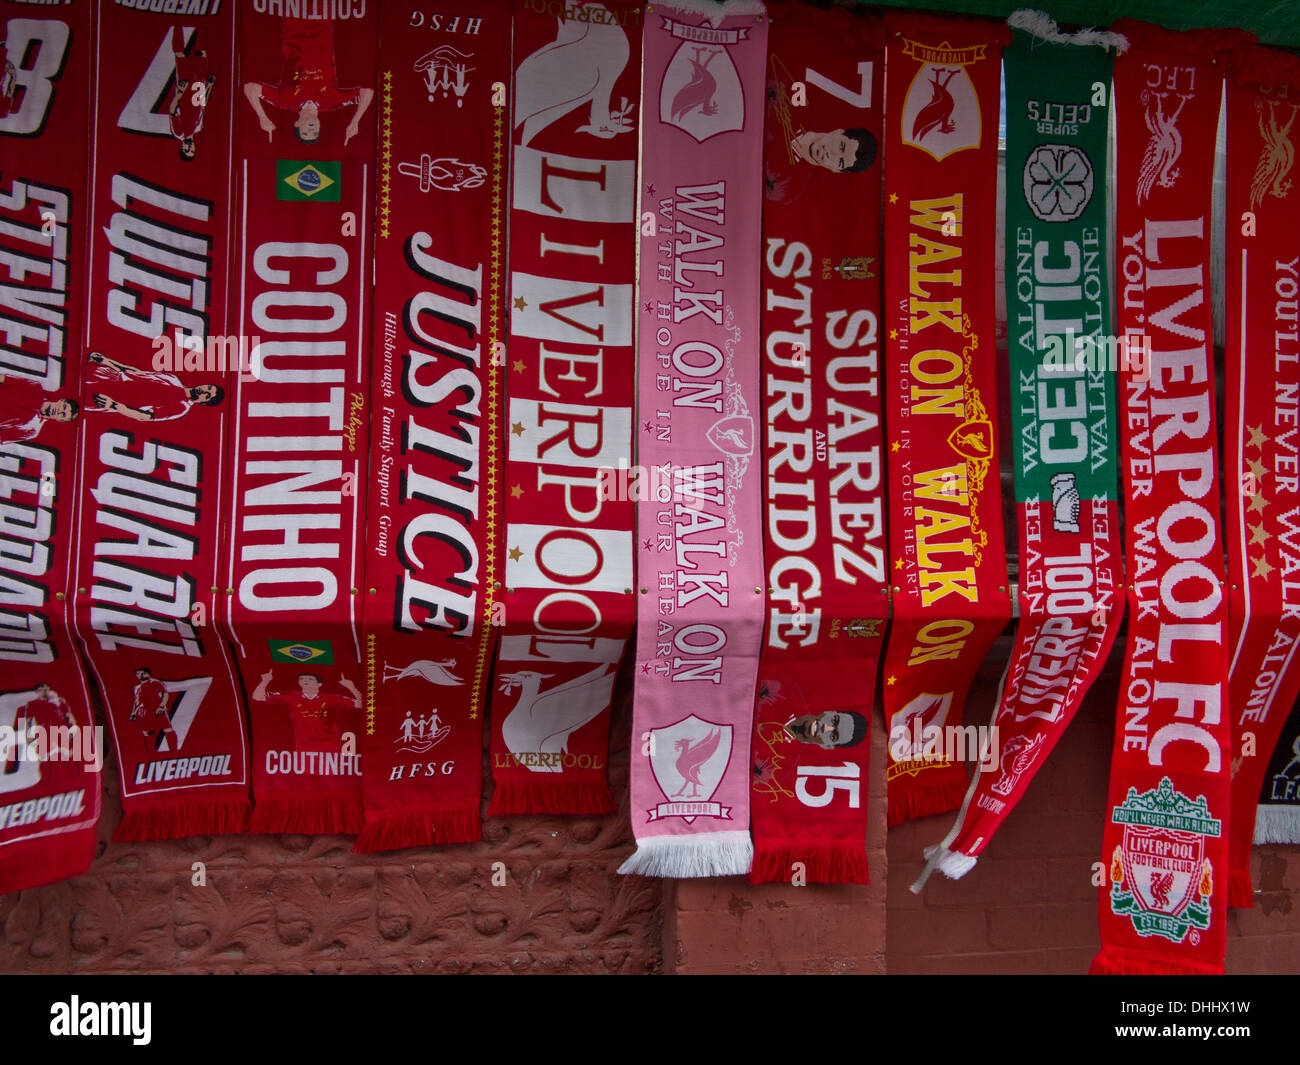 Liverpool Fc Scarves And Merchandise For Sale Outside